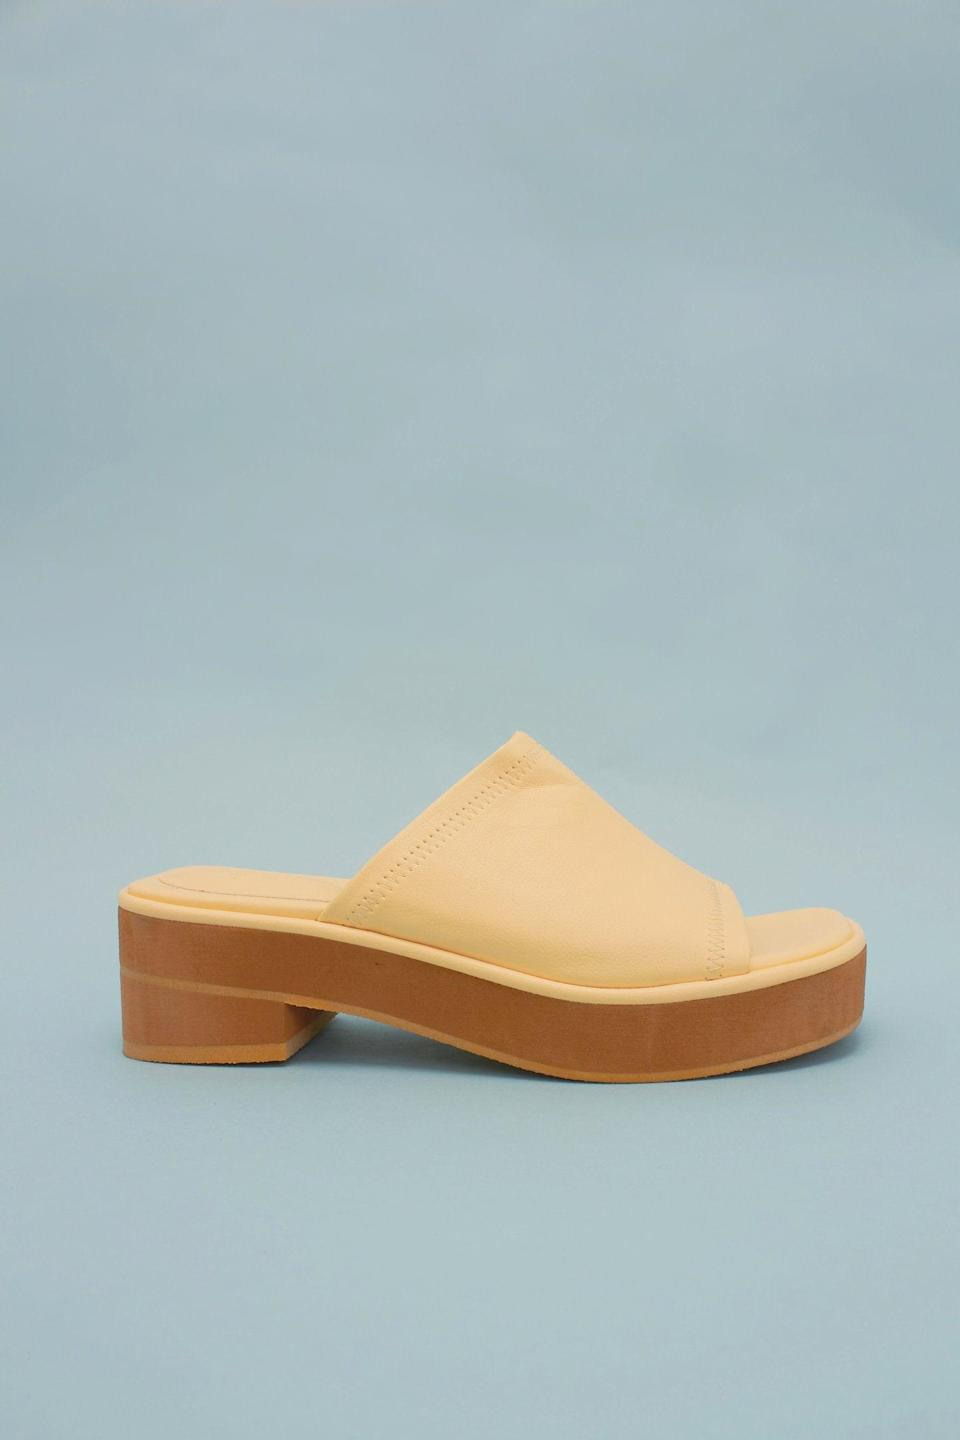 """<br> <br> <strong>The Source Unknown</strong> Slide Sandals, $, available at <a href=""""https://go.skimresources.com/?id=30283X879131&url=https%3A%2F%2Fthesourceunknown.com%2Fcollections%2Fshoes-bags%2Fproducts%2Fslide-sandals-butter"""" rel=""""nofollow noopener"""" target=""""_blank"""" data-ylk=""""slk:The Source Unknown"""" class=""""link rapid-noclick-resp"""">The Source Unknown</a>"""